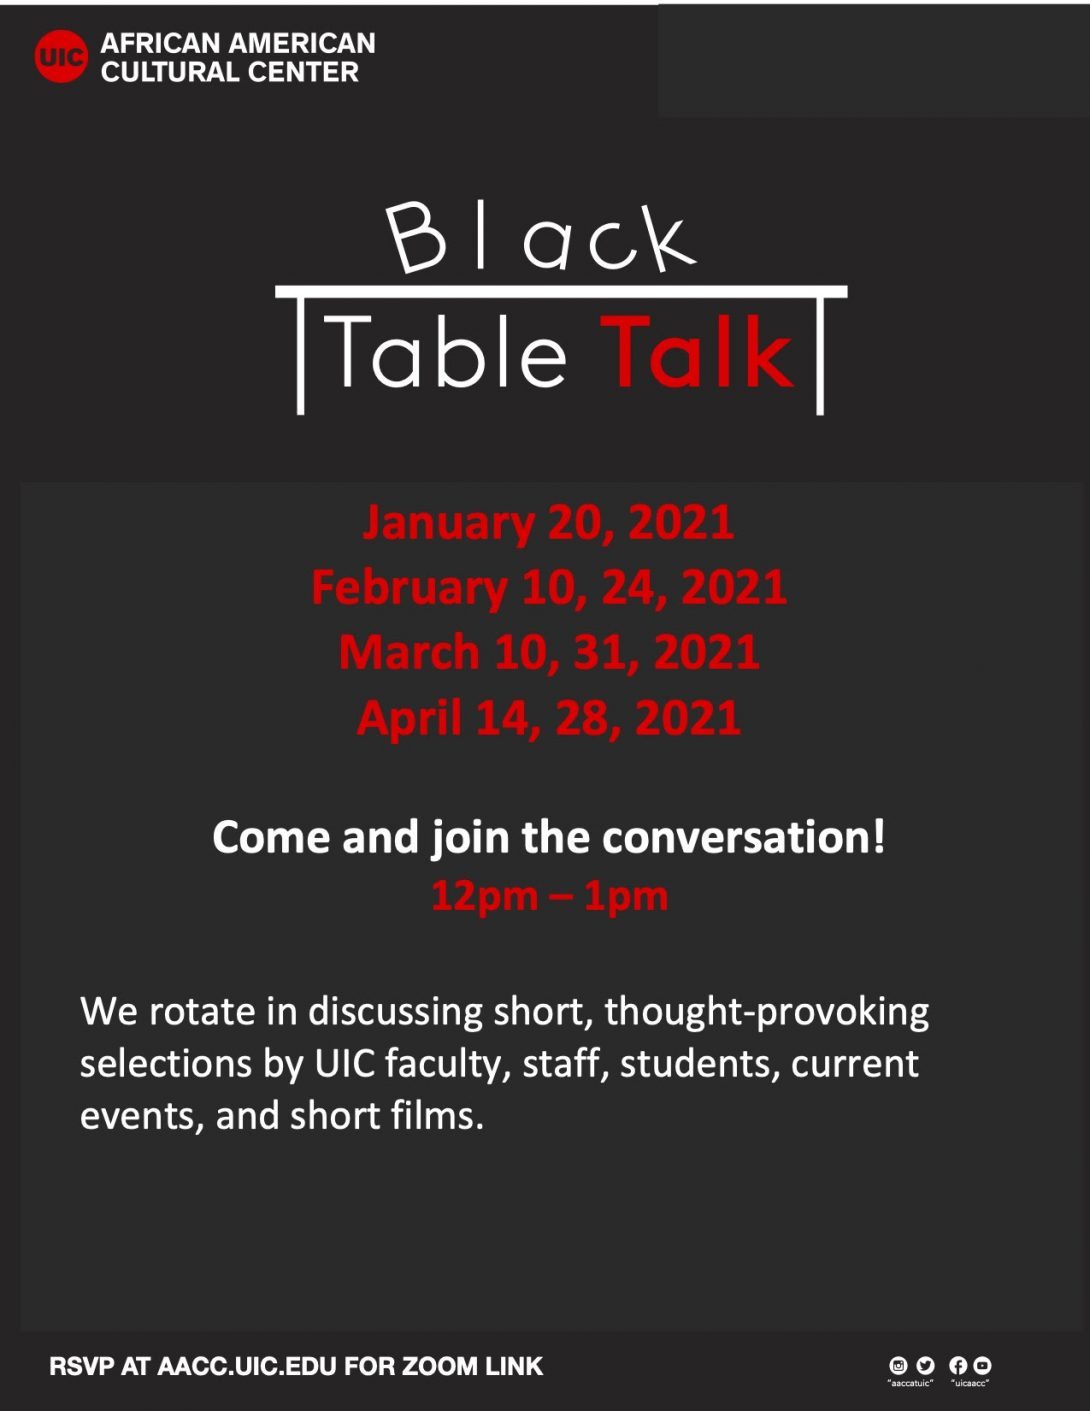 black background with a white table in the middle. above it is the word 'Black' and underneath is 'Table Talk'